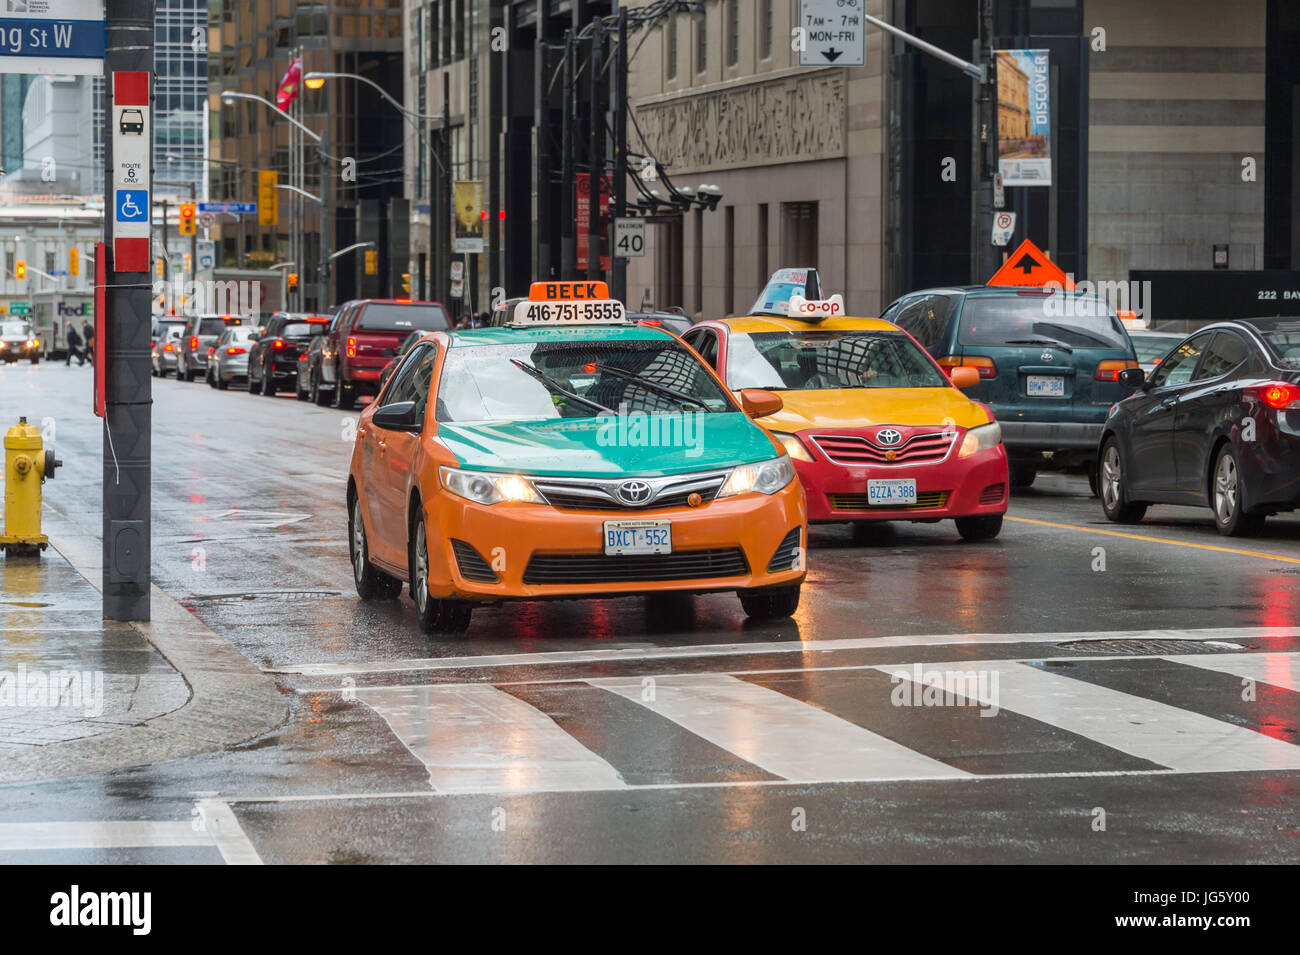 Toronto, Canada - 26 June 2017: 2 taxis in Downtown Toronto on a rainy day - Stock Image